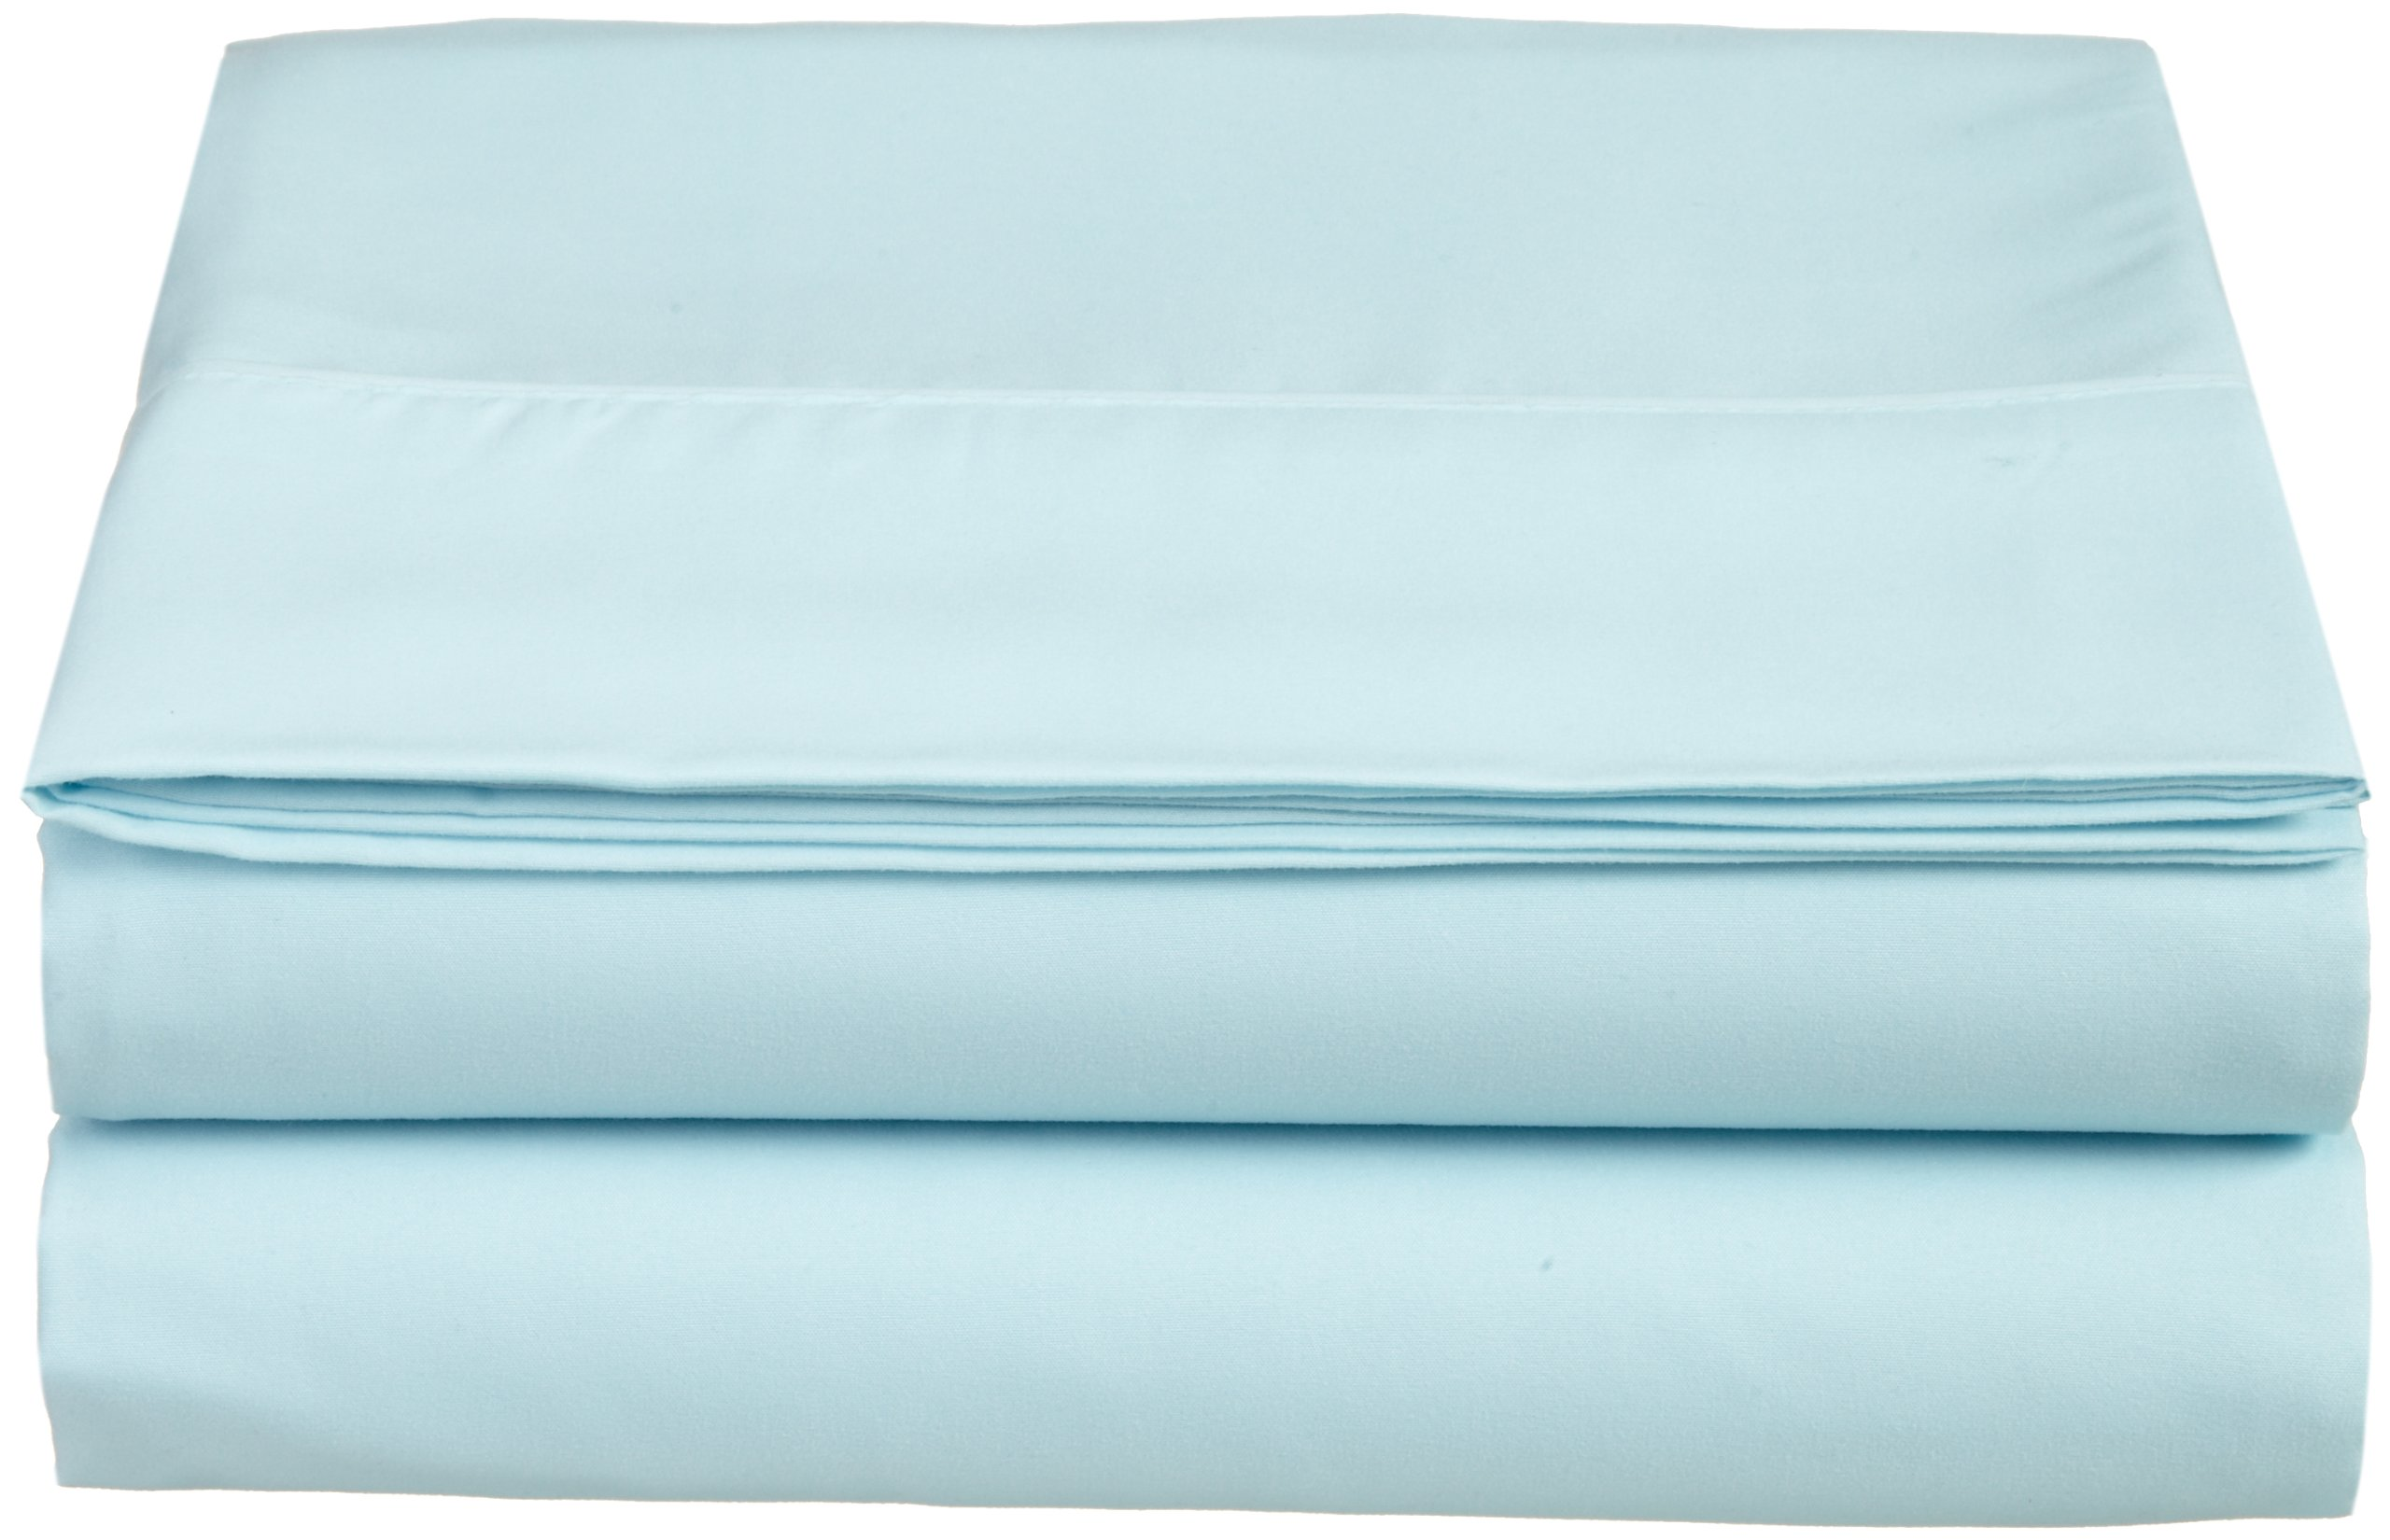 Cathay Luxury Silky Soft Polyester Single Flat Sheet, Twin Size, Aqua by Cathay Home